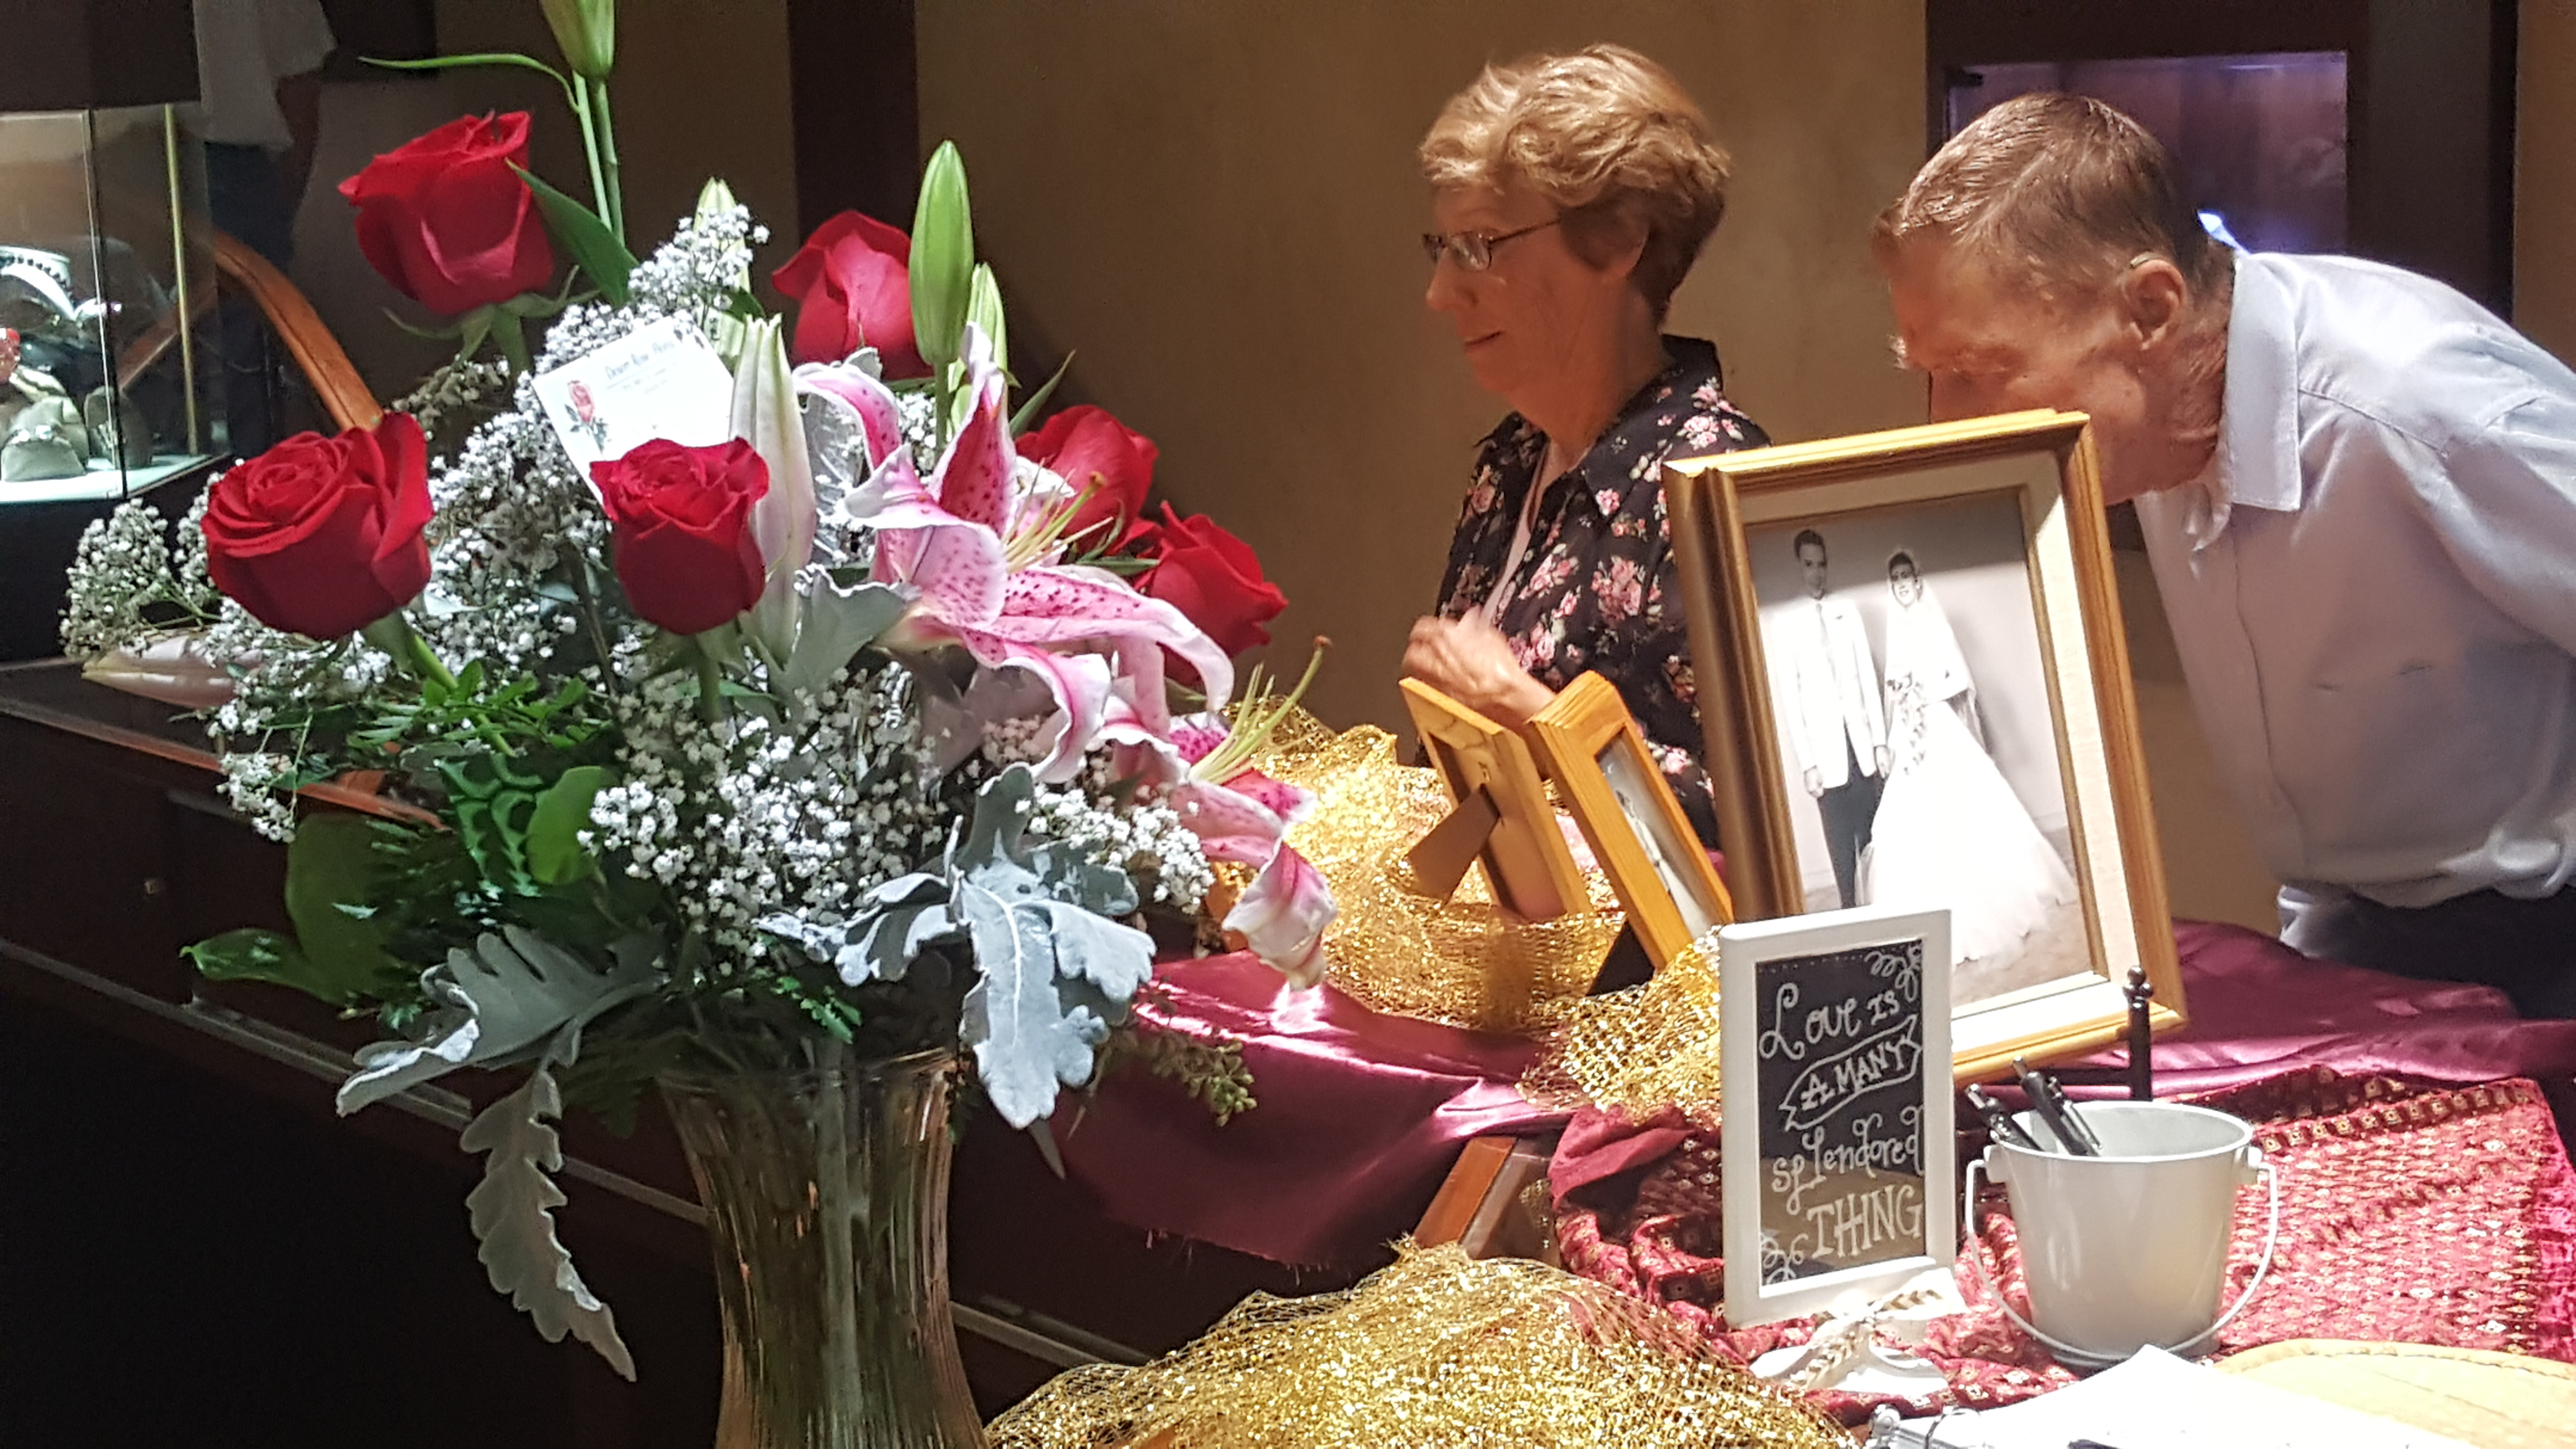 Friends and family mingle at LaRee and Heber Jones' 60th wedding anniversary, Forever Young Fine Jewelry, St. George, Utah, Oct. 12, 2016 | Photo courtesy of Megan Young, St. George News